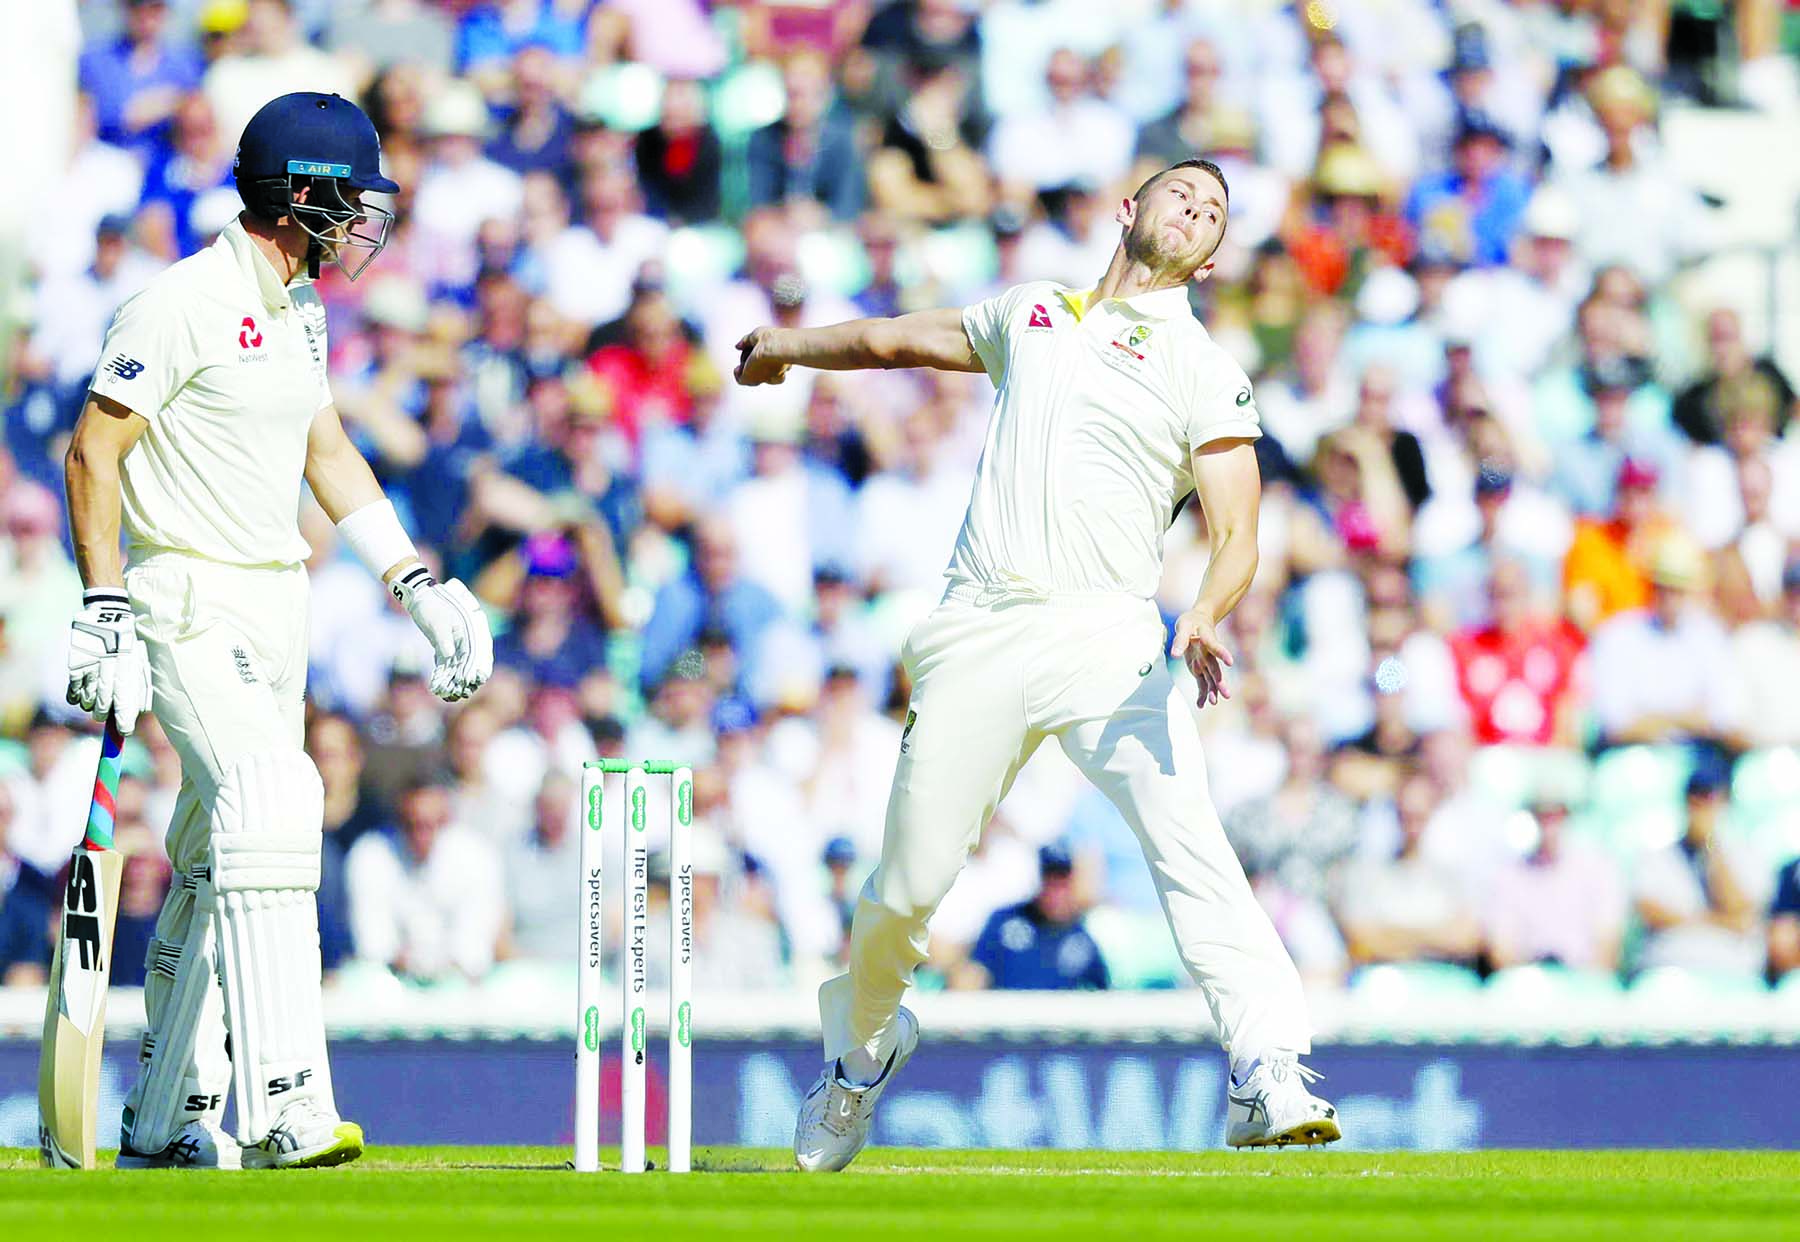 Australia's Josh Hazlewood bowls during the third day of the fifth Ashes Test match between England and Australia at the Oval cricket ground in London on Saturday.